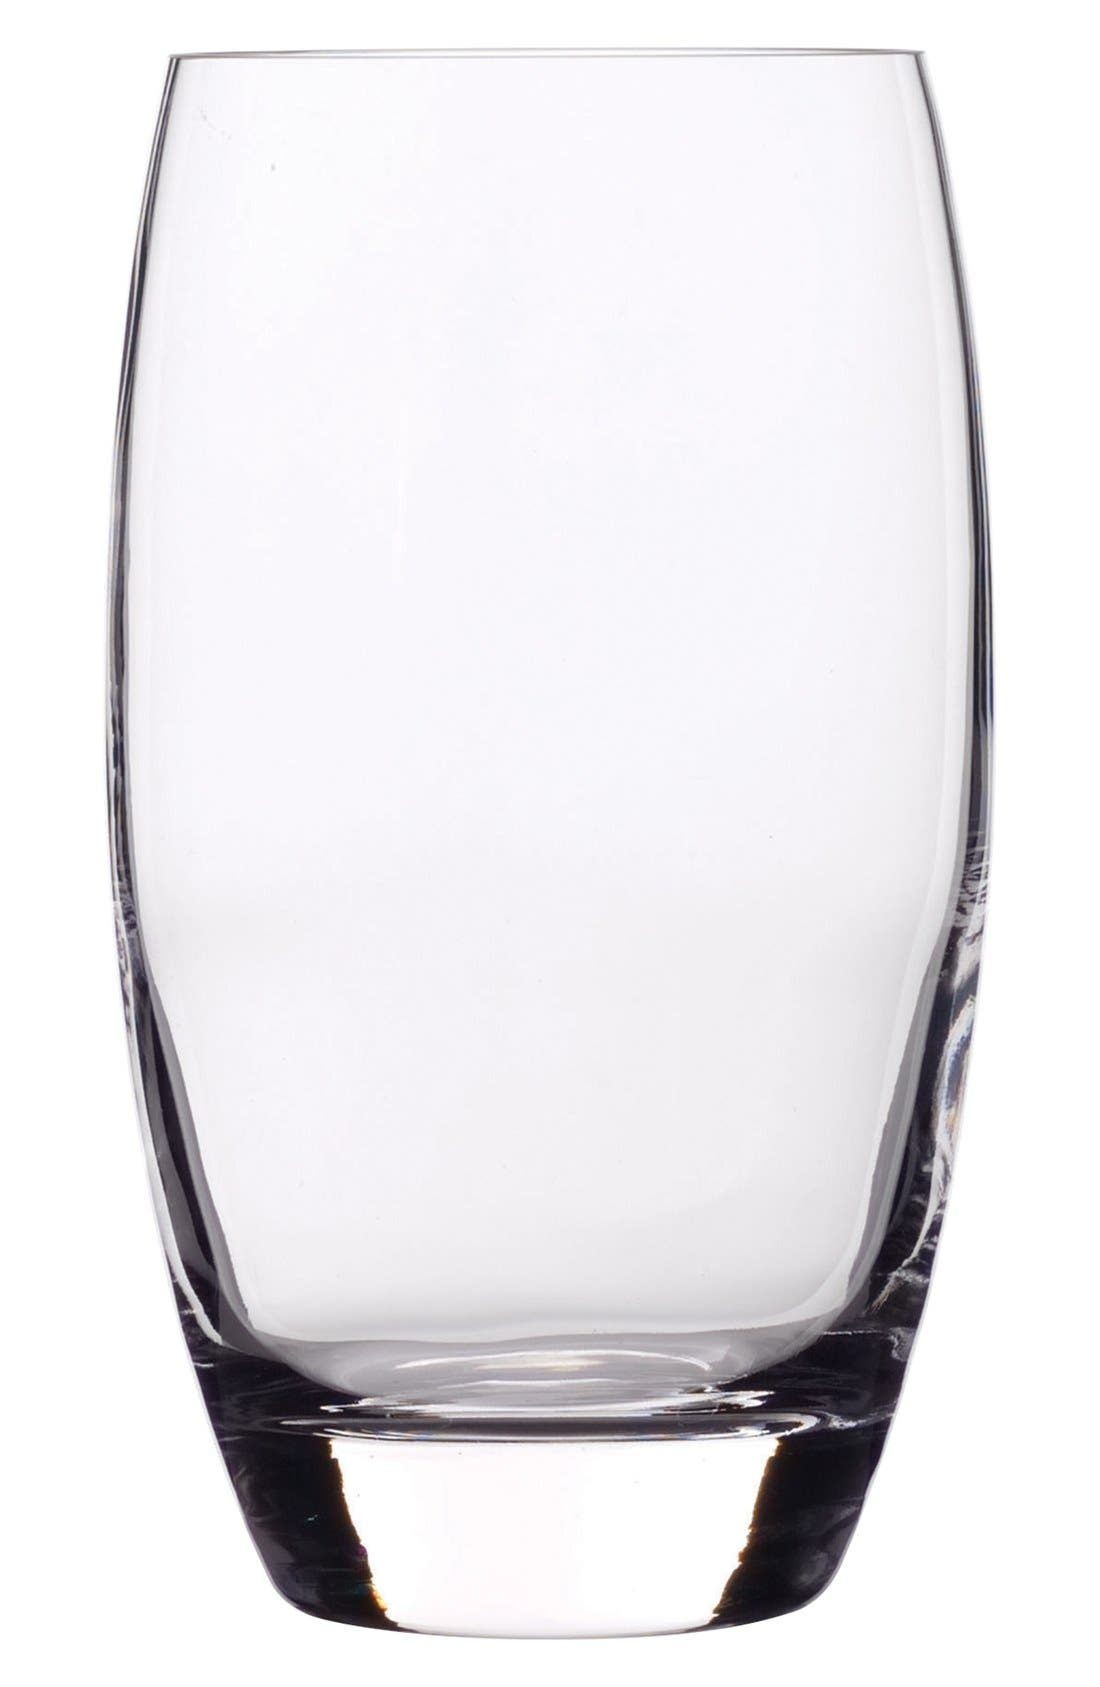 Luigi Bormioli 'Crescendo' Beverage Glasses (Set of 4)